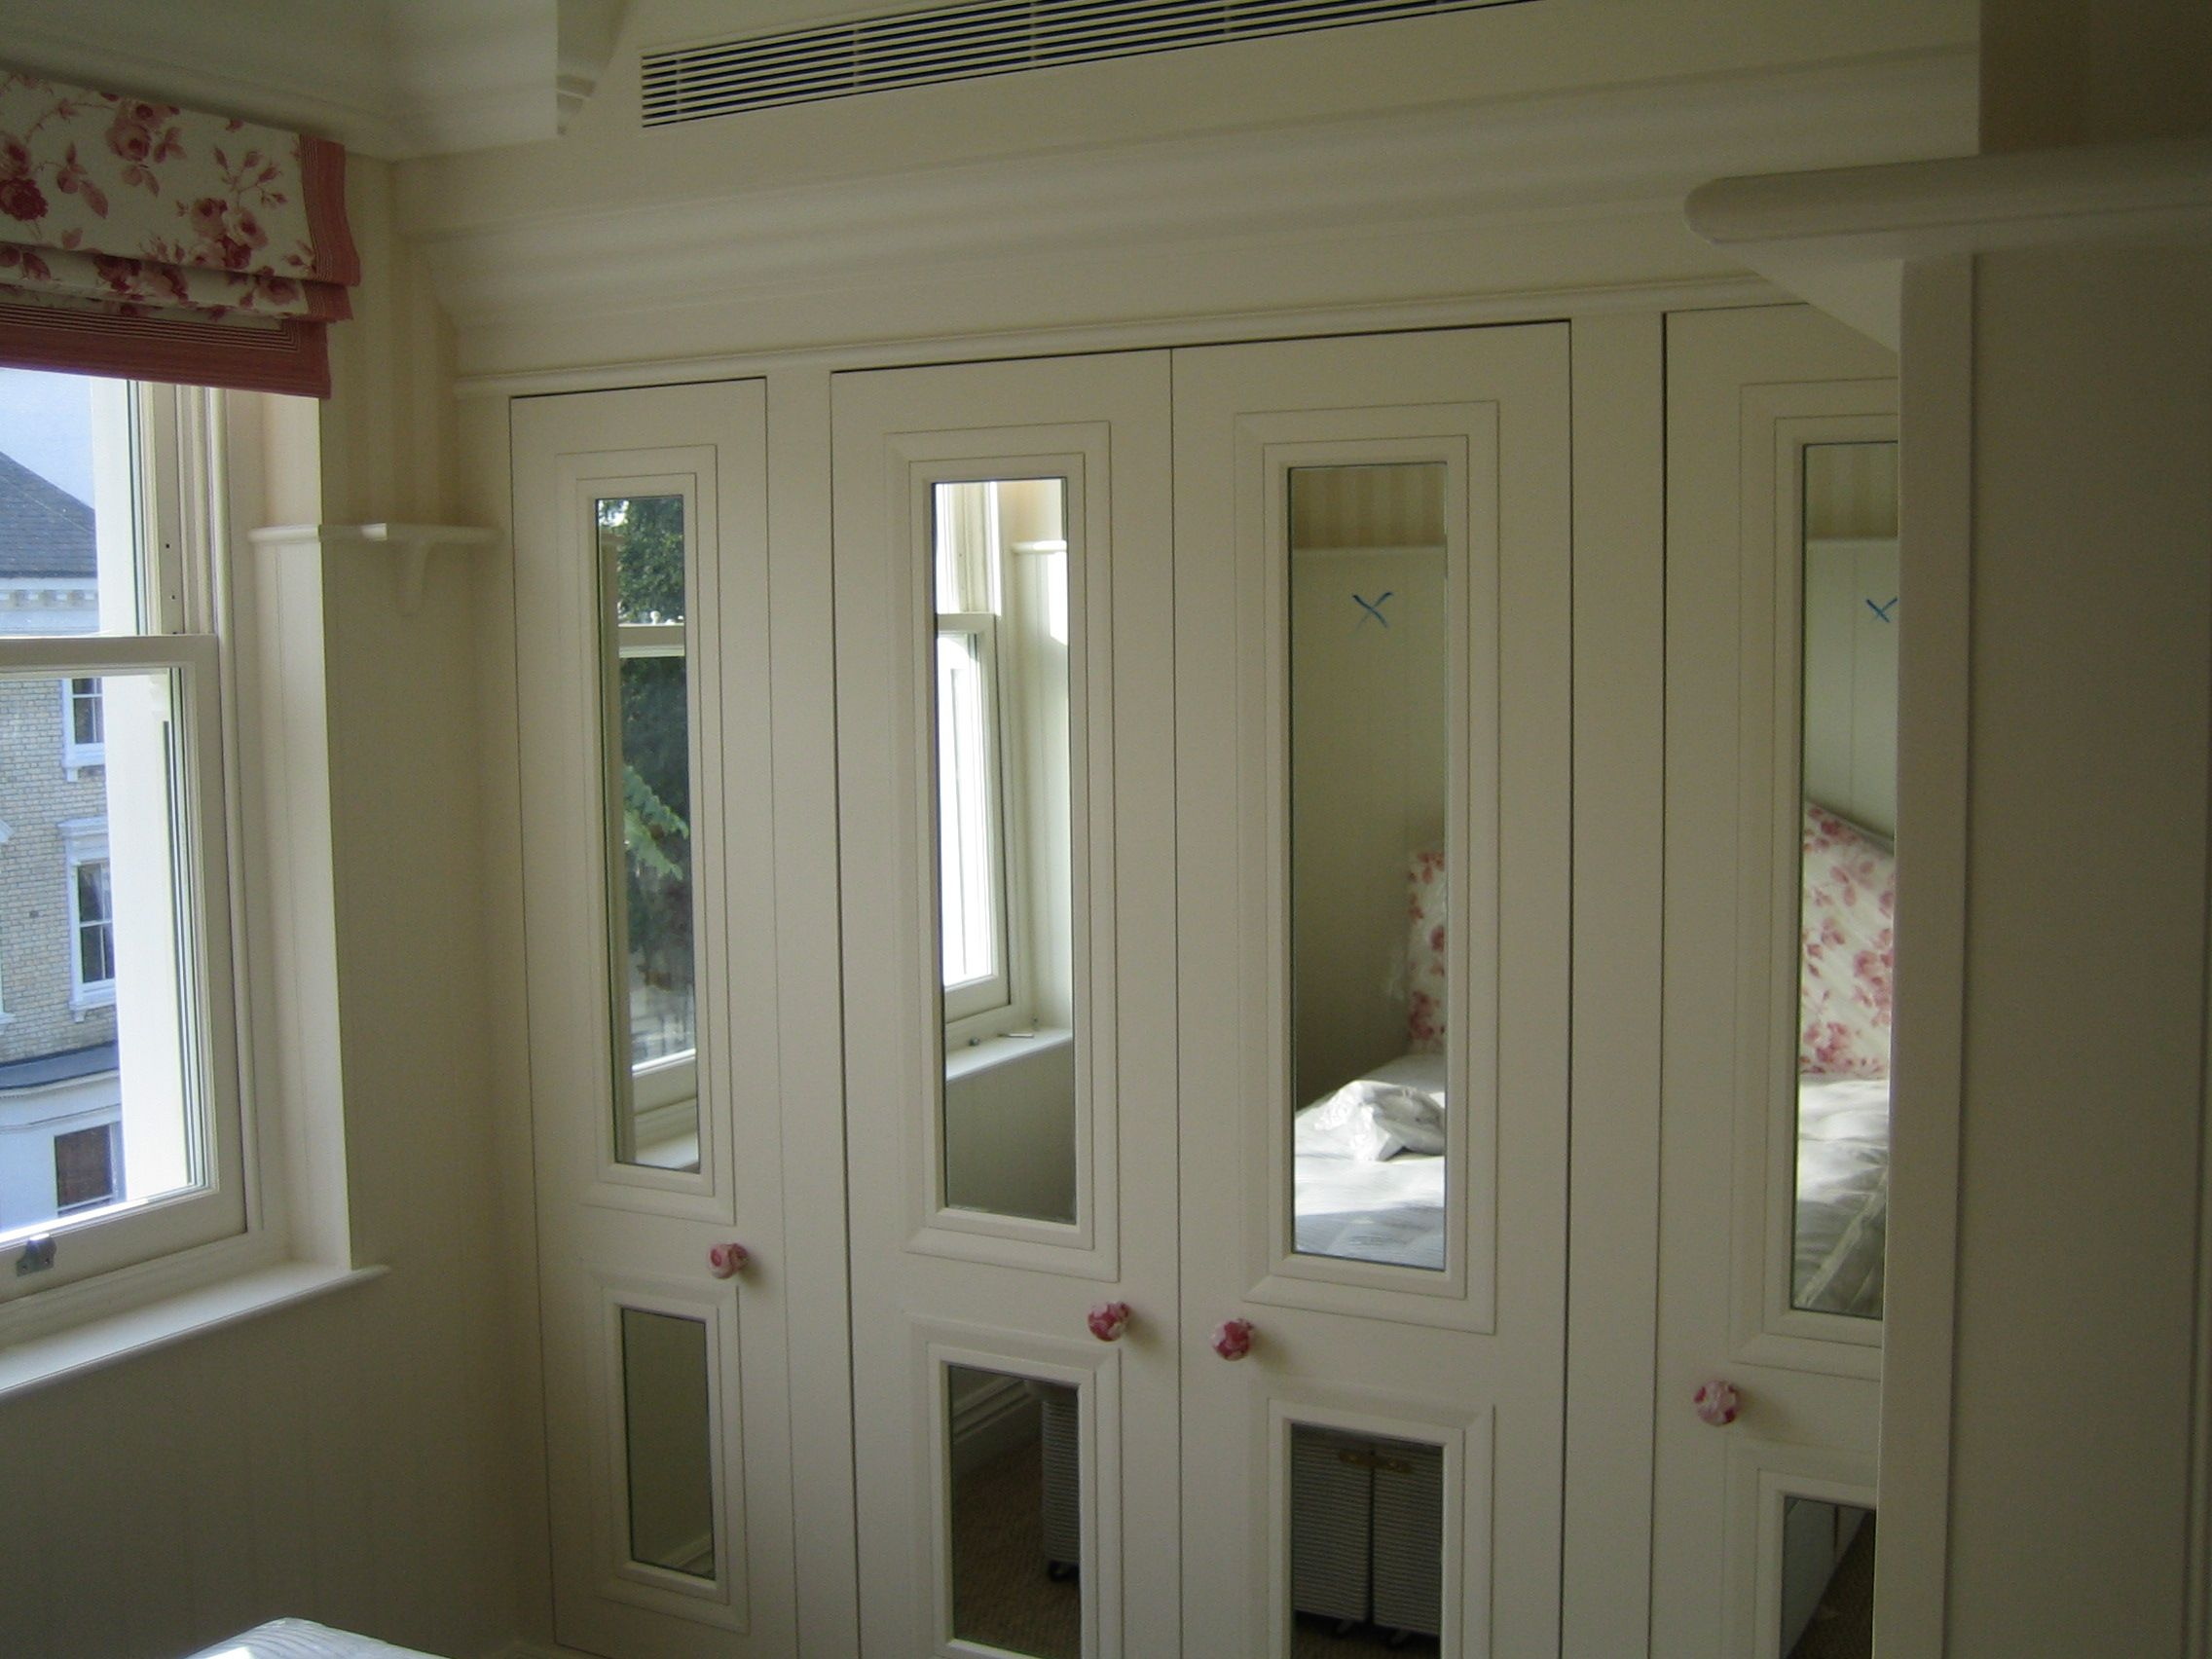 scale wrong but mirror inset wardrobe doors